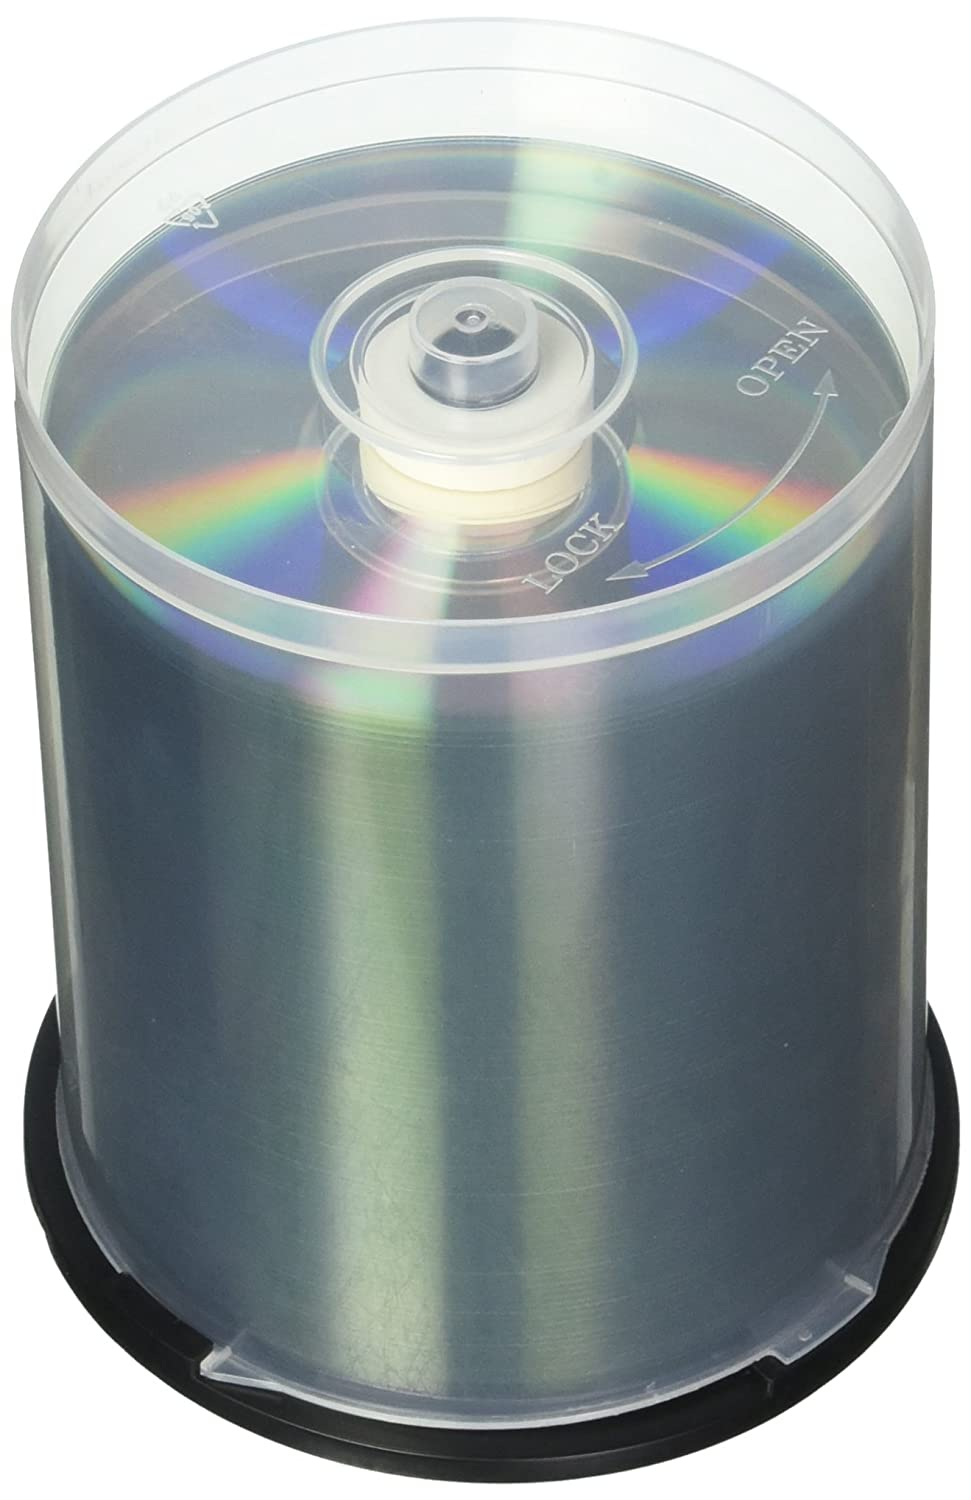 image relating to Verbatim Cd R Printable titled Verbatim CD-R 700MB 52X Dazzling Silver Silk Display Printable, Hub Printable - 100pk Spindle